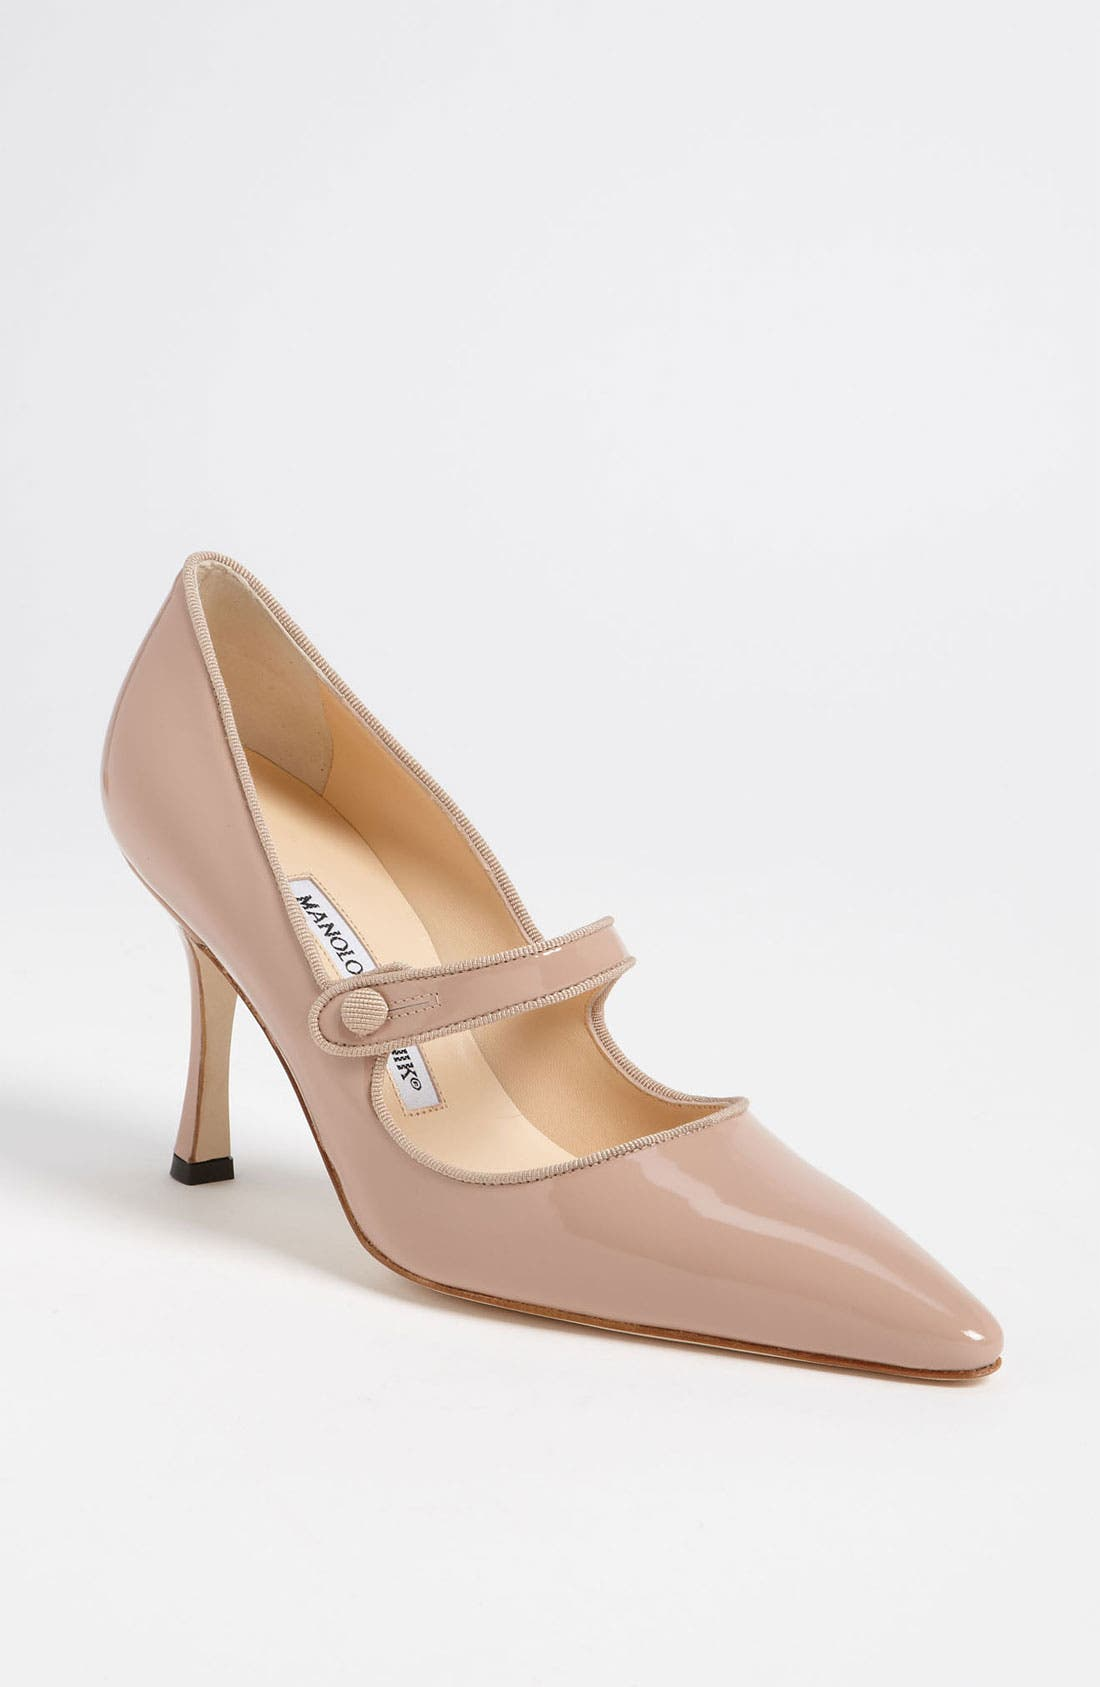 'Campari' Pump,                         Main,                         color, Nude